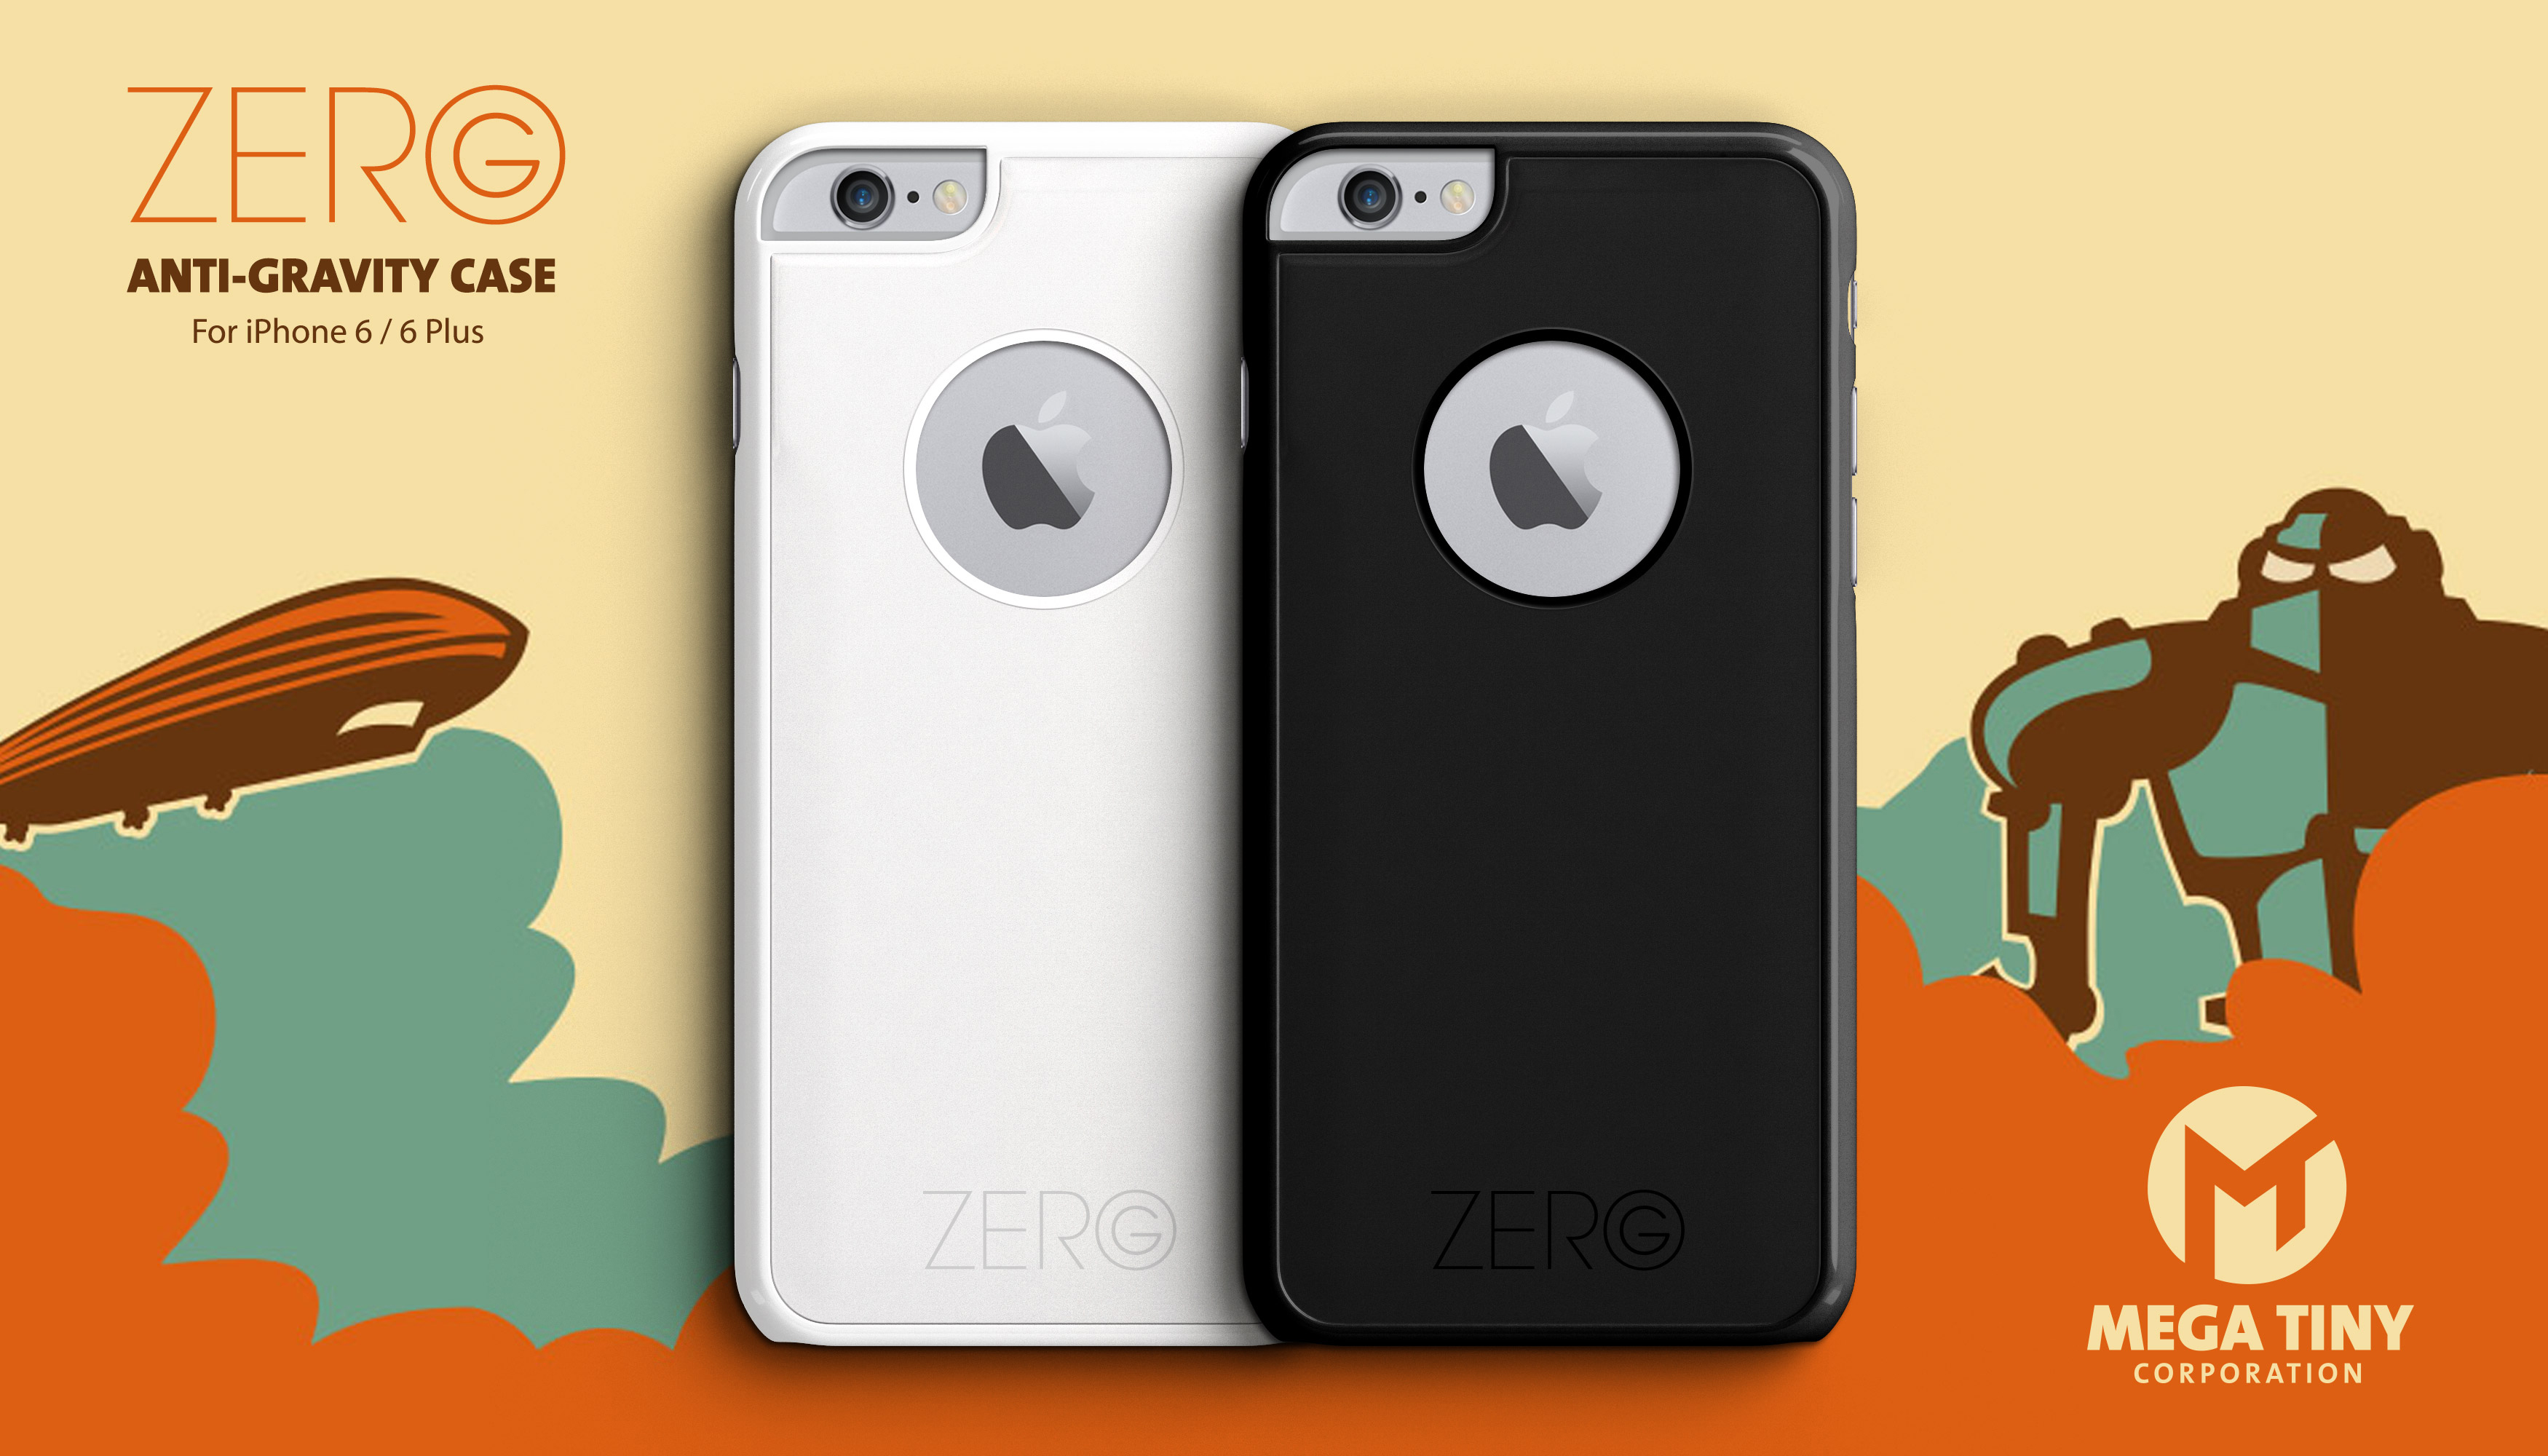 Stick your iPhone almost anywhere with the new Zero G Anti-Gravity Case